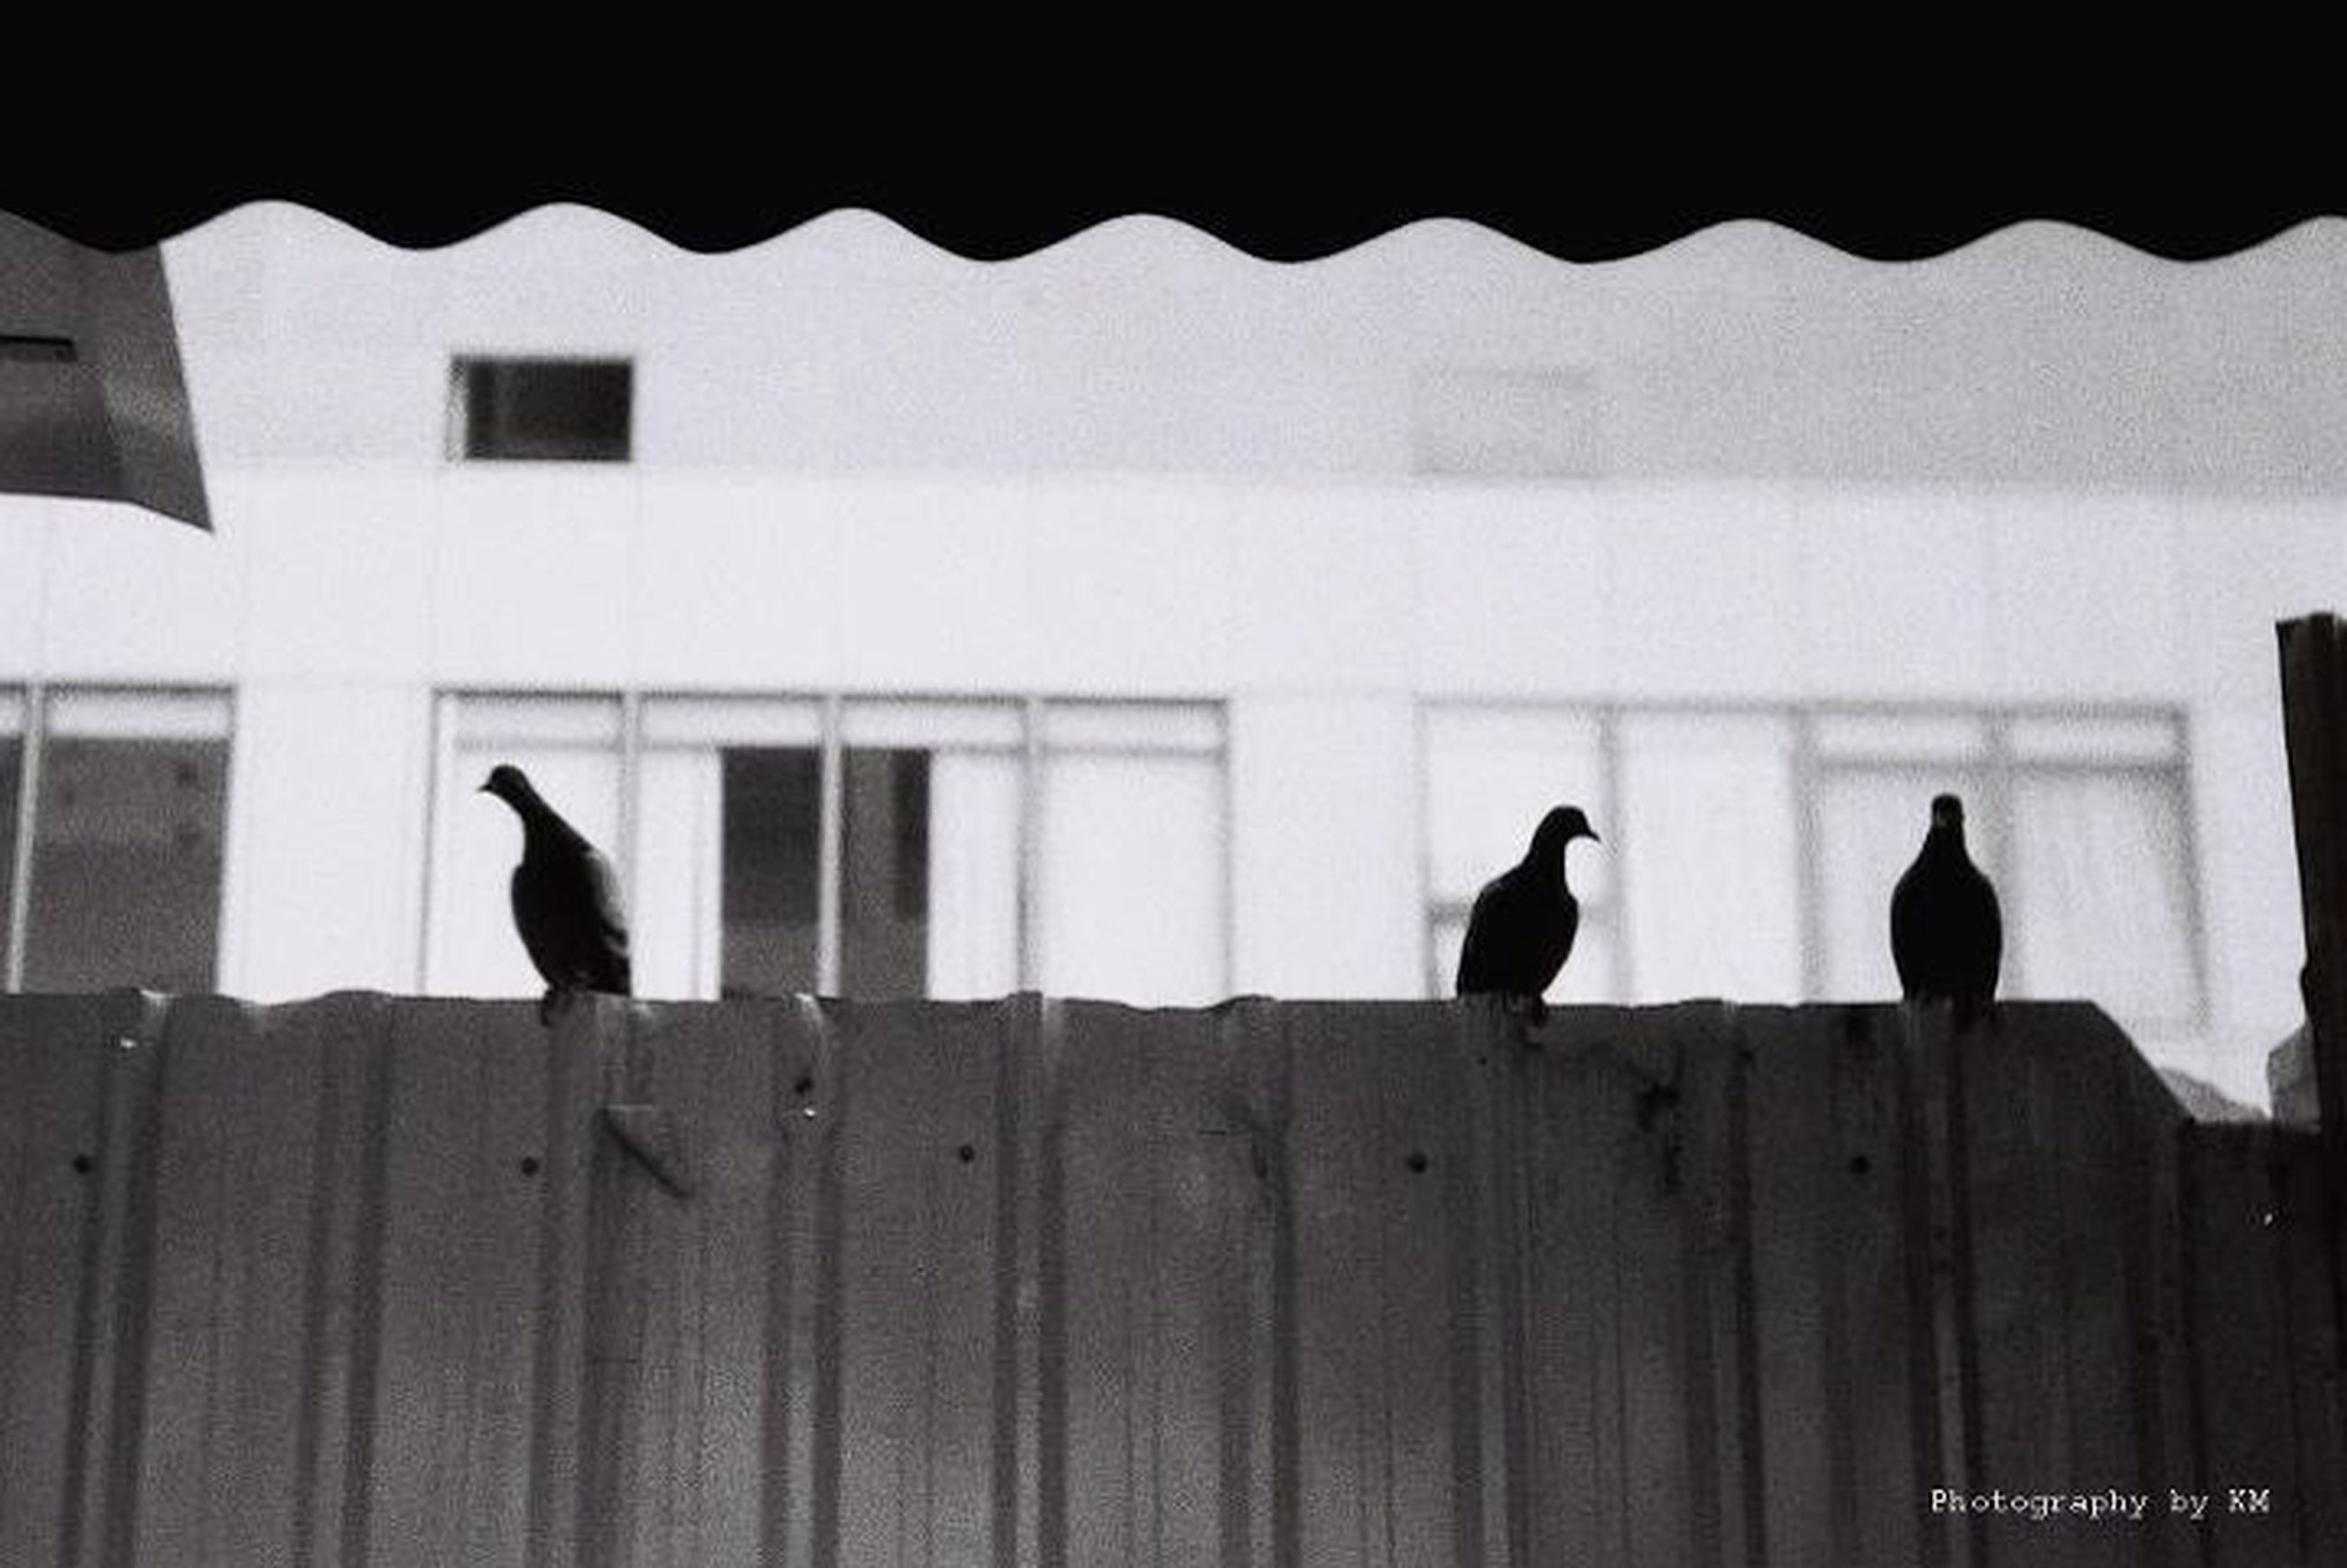 animal themes, bird, animals in the wild, perching, wildlife, one animal, built structure, pigeon, architecture, silhouette, two animals, building exterior, window, railing, full length, outdoors, day, reflection, no people